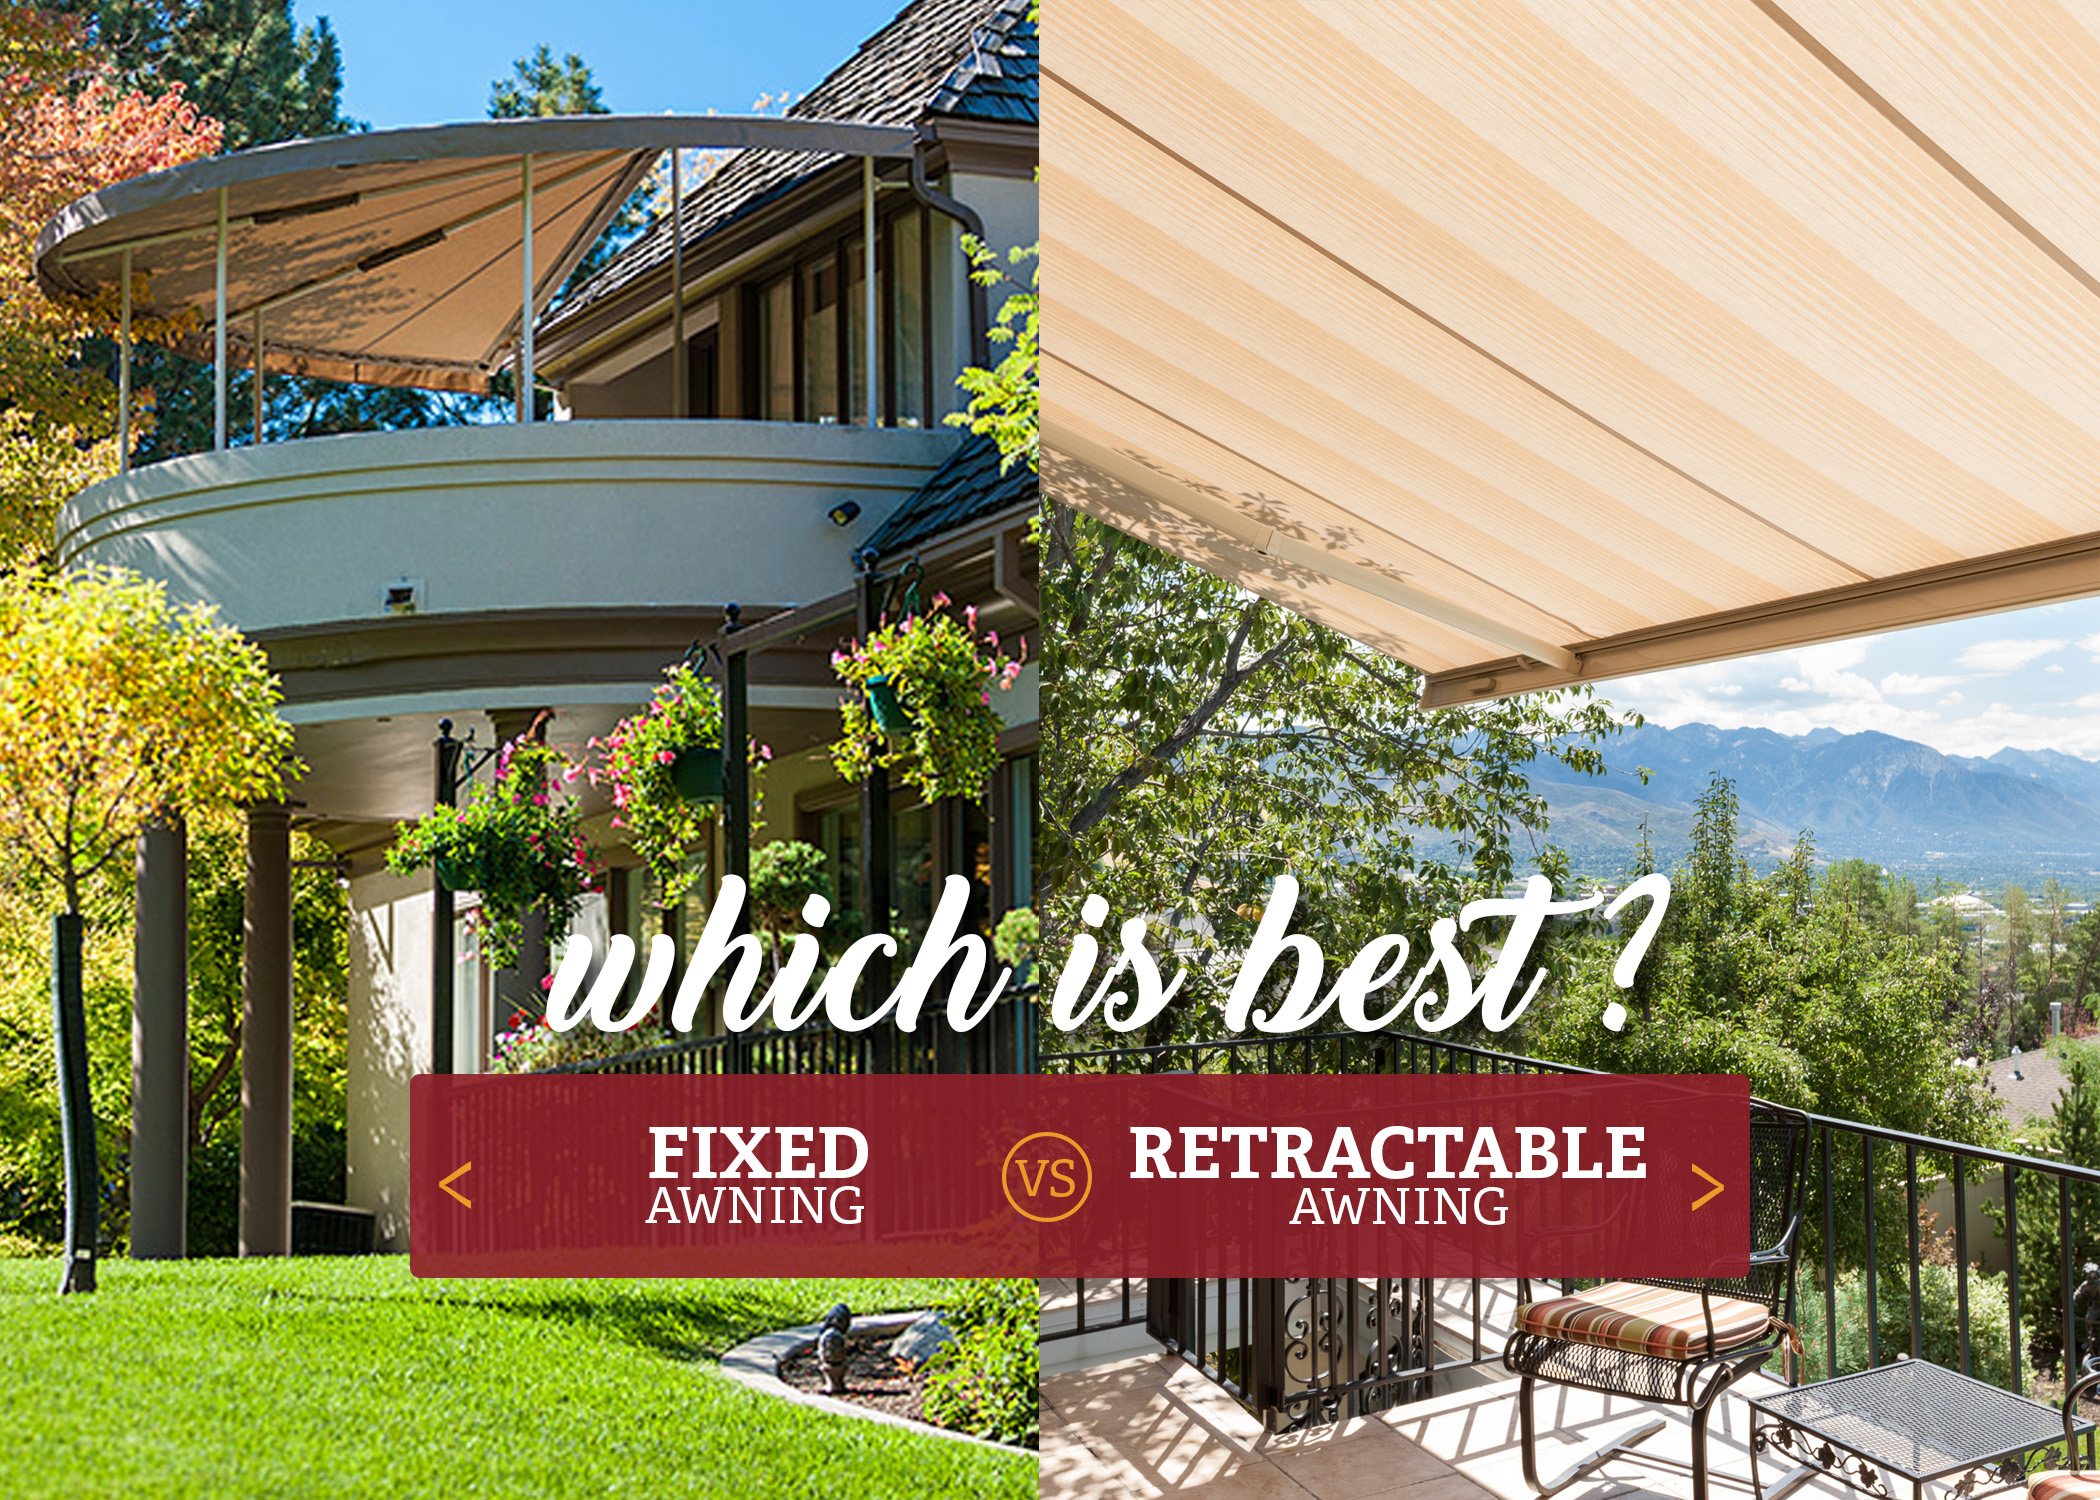 Outdoor Living Spaces Are All The Rage These Days. A Nicely Designed Patio  Or Deck Will Not Only Bring The Family Together More Often And Ease  Unhealthy ...